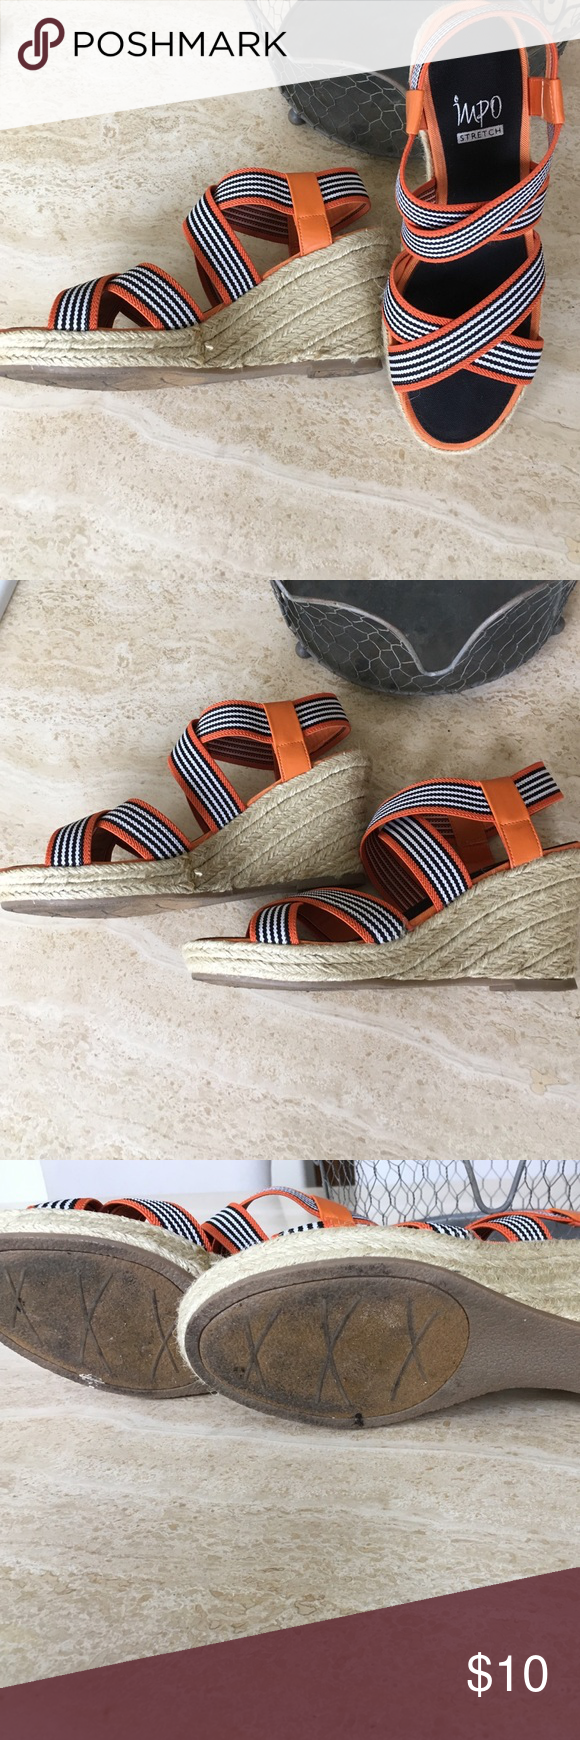 Impo espadrille Worn once but excellent condition. About 3.25 in wedge heel Impo Shoes Wedges